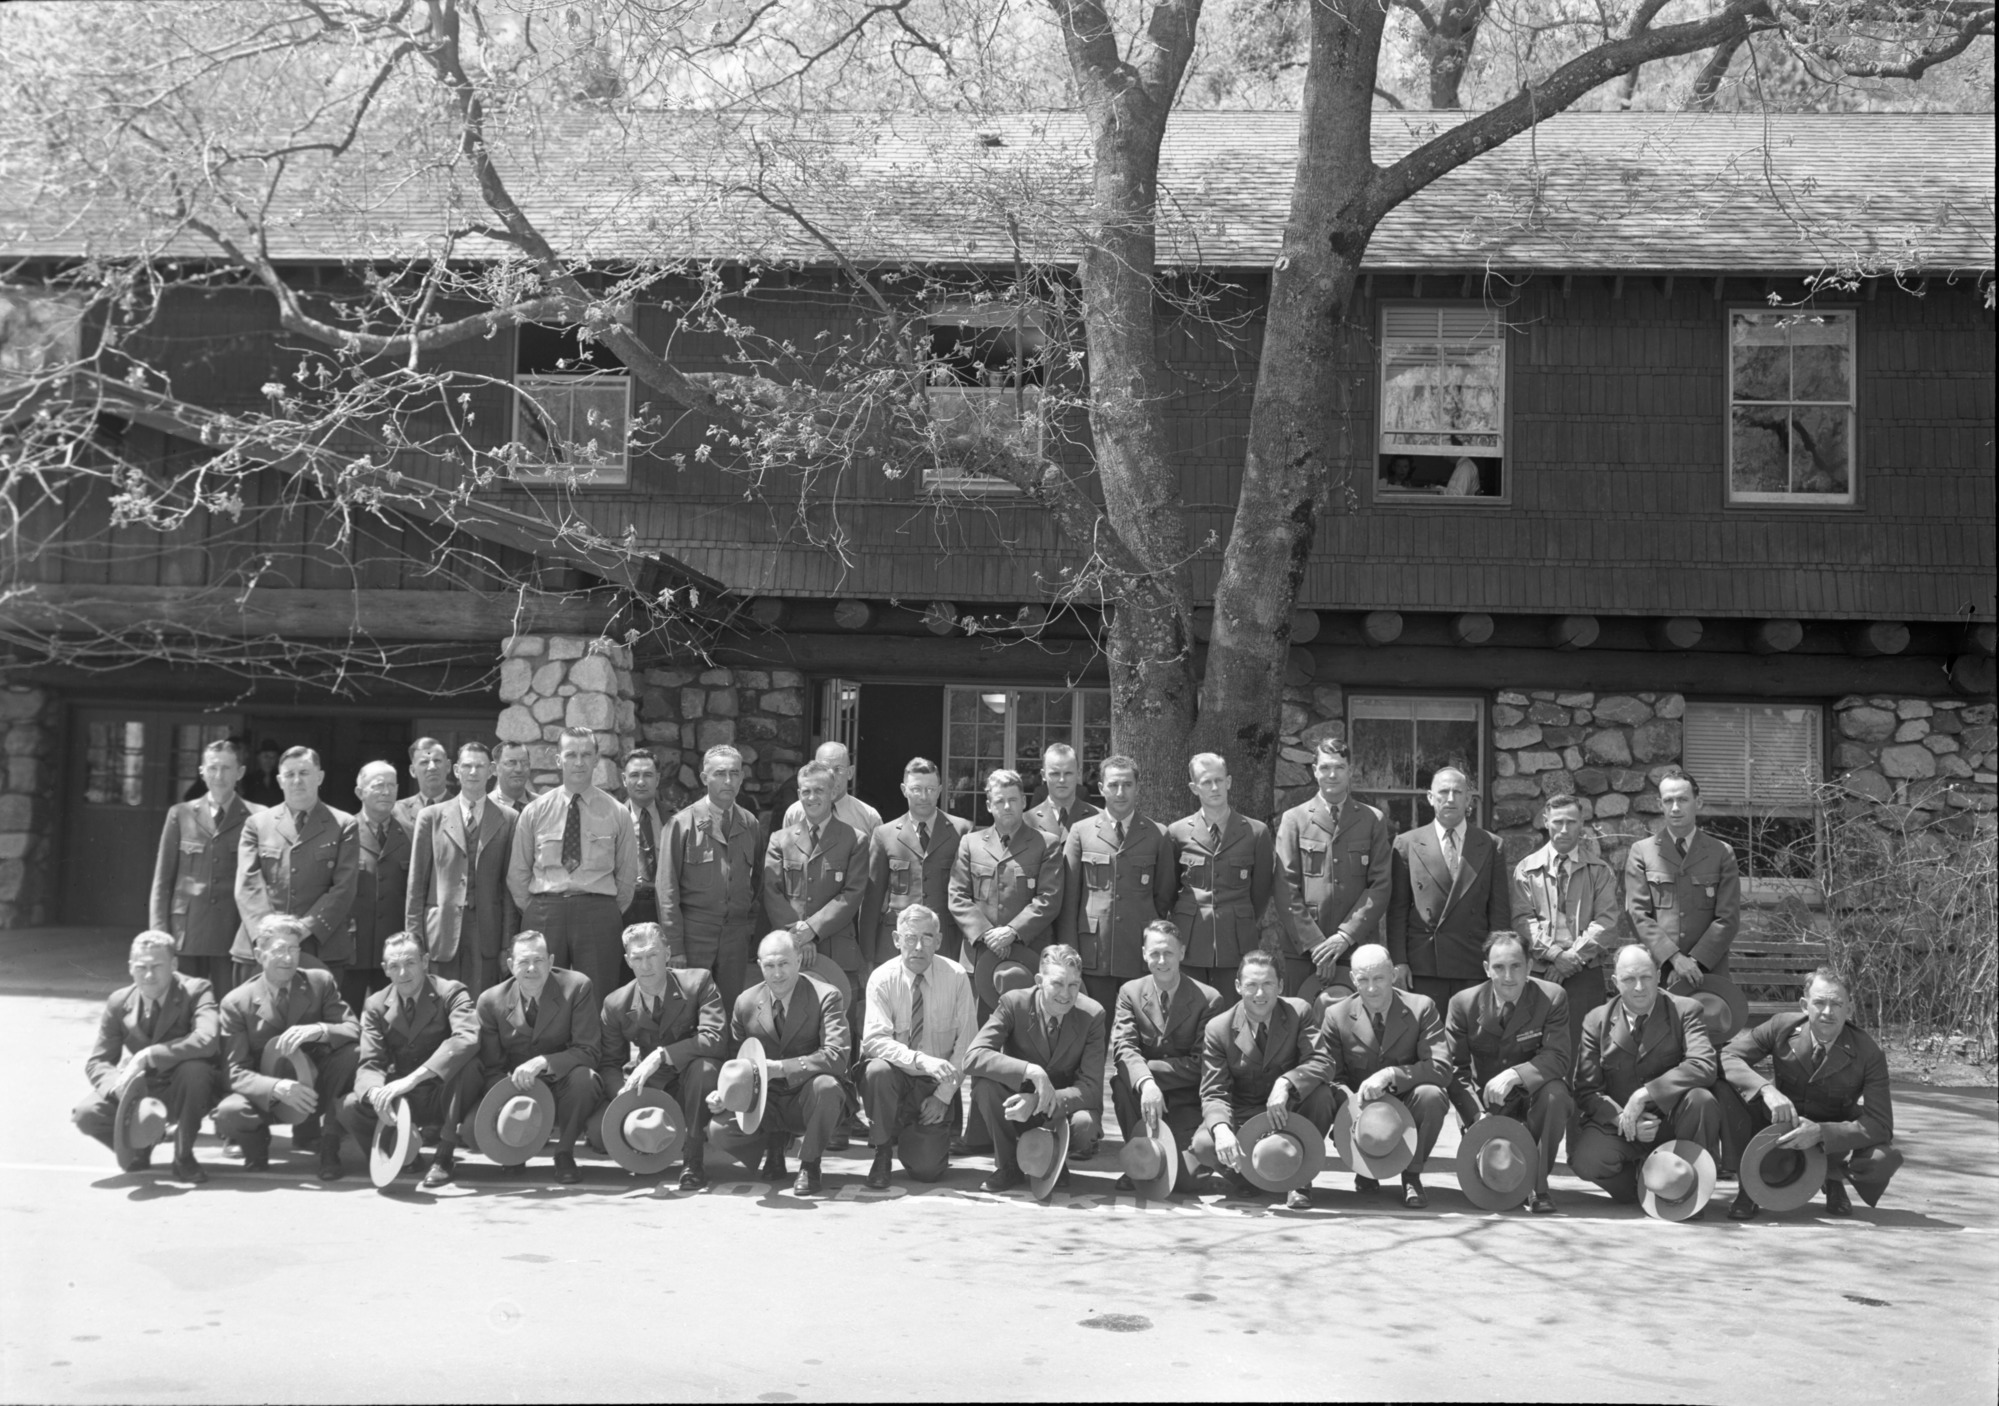 "Supt. & Rangers Fire Conference ""Hats off"" Left to Right: BACK ROW: Stewart Wallace, Walt Finn, Gus Eastman, John Bingaman, Moore, George Walker, Larry Cook, Rocky Cochran (D.V.), Mike Oakes, Maurie Thede, Irving Kerr, Jack Reynolds, Jack Nattinger (Olympic), Samuel Pusateri, Floyd Dickinson (Olympic), Fred Walker, Loyd Finch (Sequoia), Ward Yeager. FRONT ROW: Tommy Rilon, Carl Danner, Ron Haelock, Odin Johnson, Frank Givens, Bill Merrill, Sanford, Oscar Sedergren, Hall, Gordon Bender, Browne, Bill Joffee, Offal, Jack Bell."